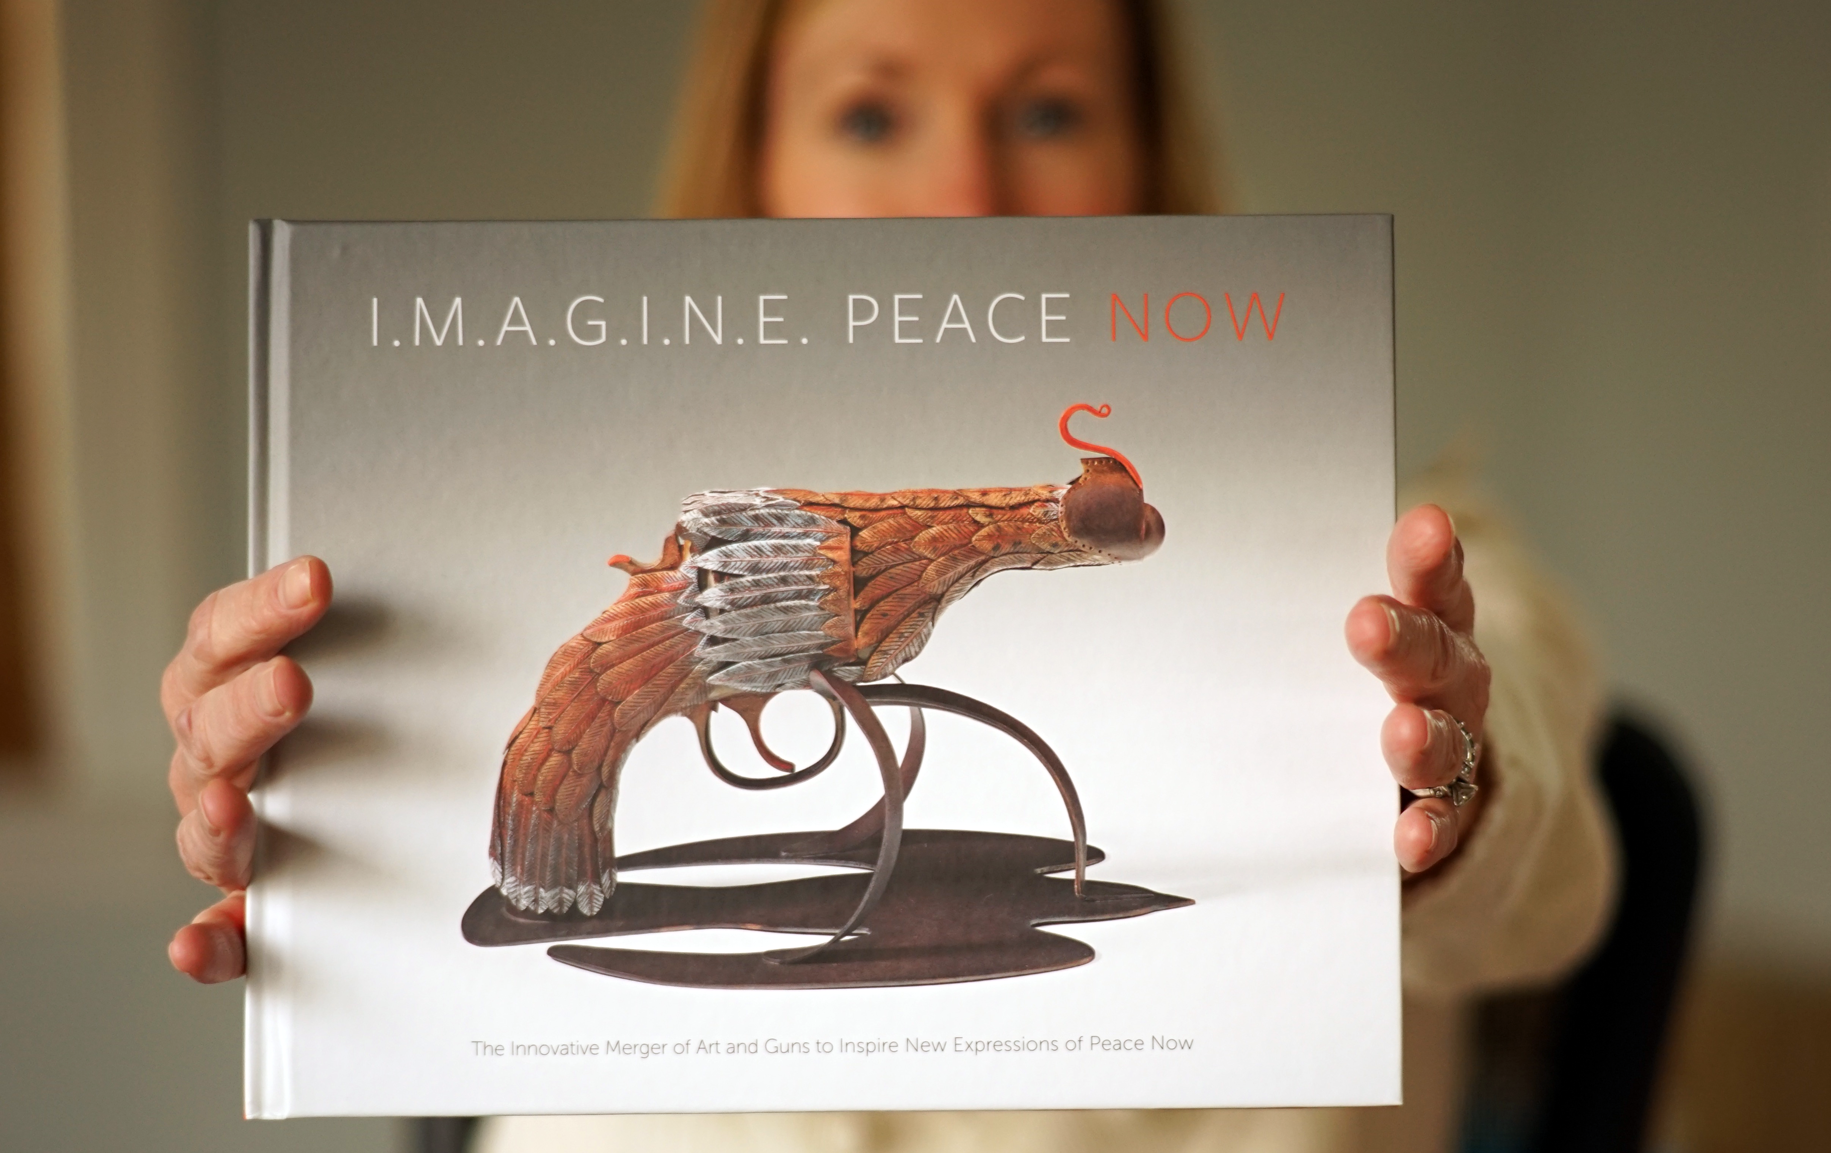 imagine_peace_now_holding_book.png